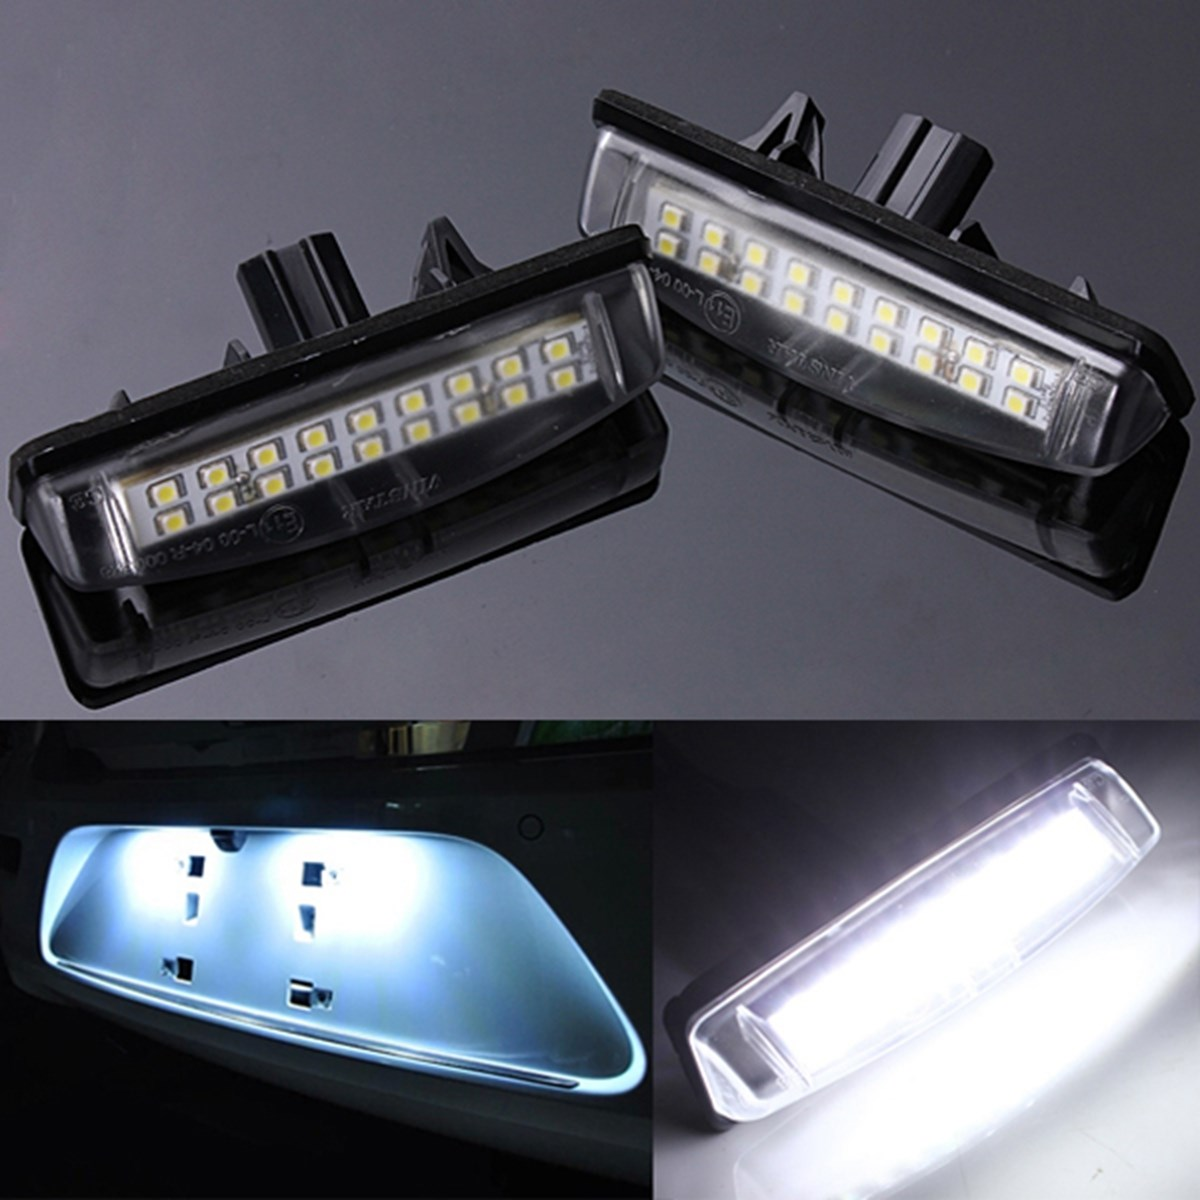 2X White Car LED License Plate Lights 12V Number Plate Lamp No Error fit For Lexus IS200 IS300 GS300 car led lights 2x error free white led license plate light lamp for kia sportage 11 15